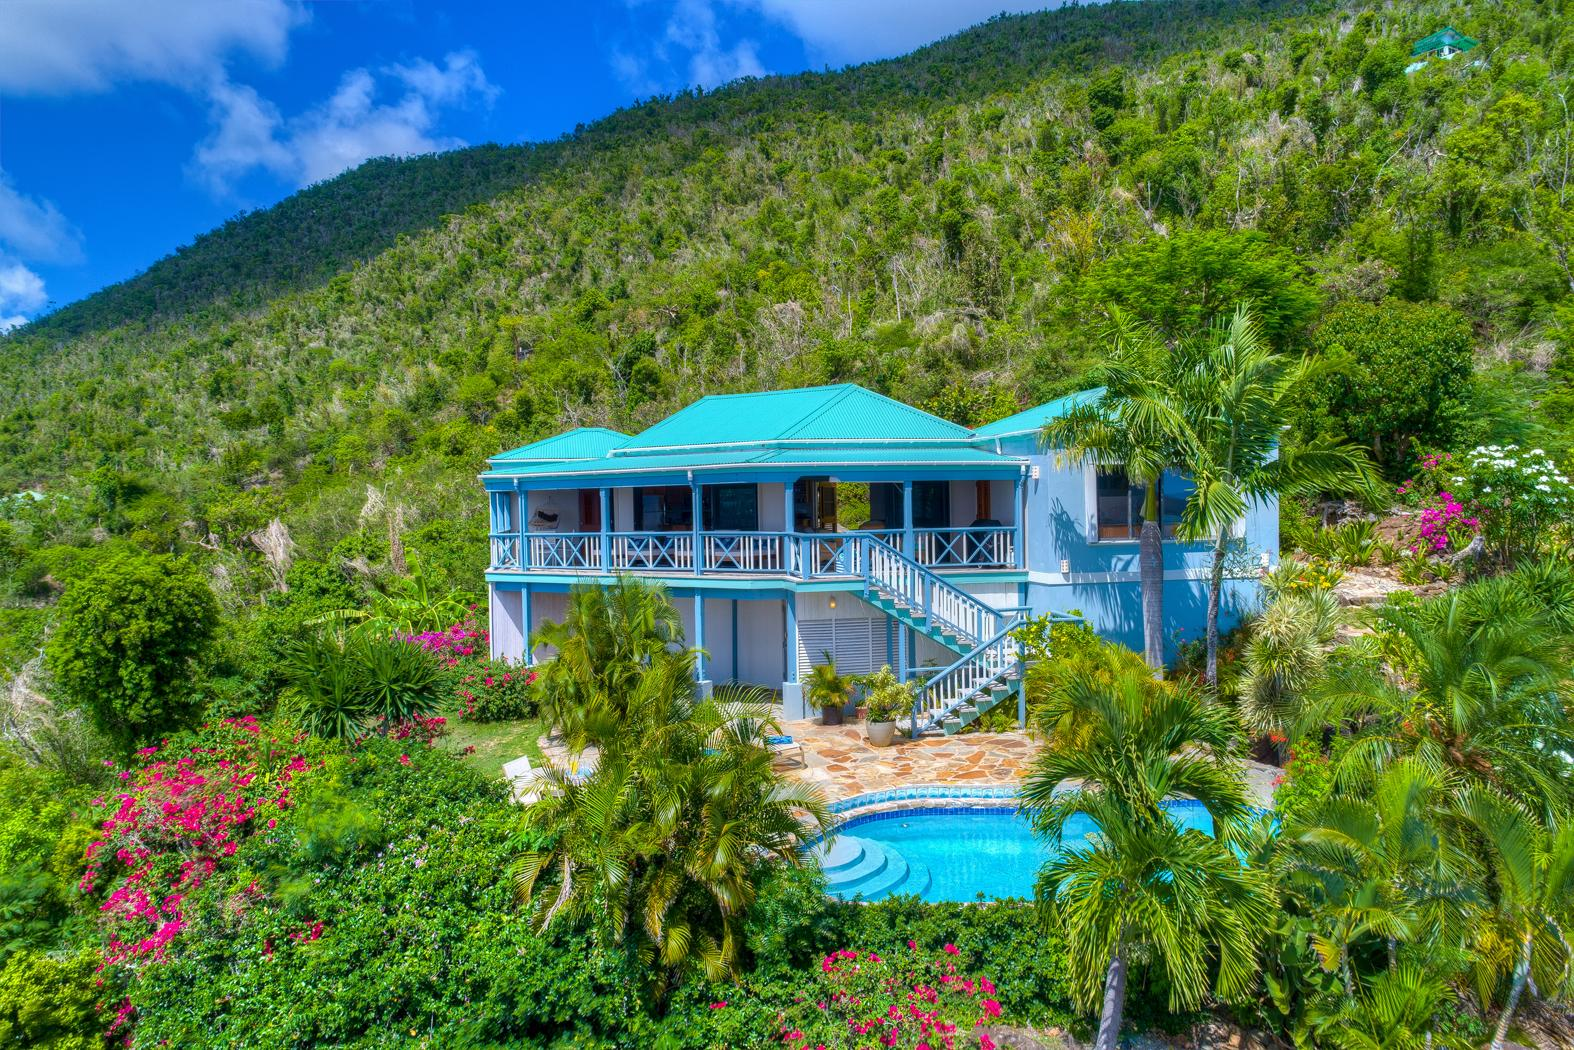 Caribbean Oasis Perched Above the Sea